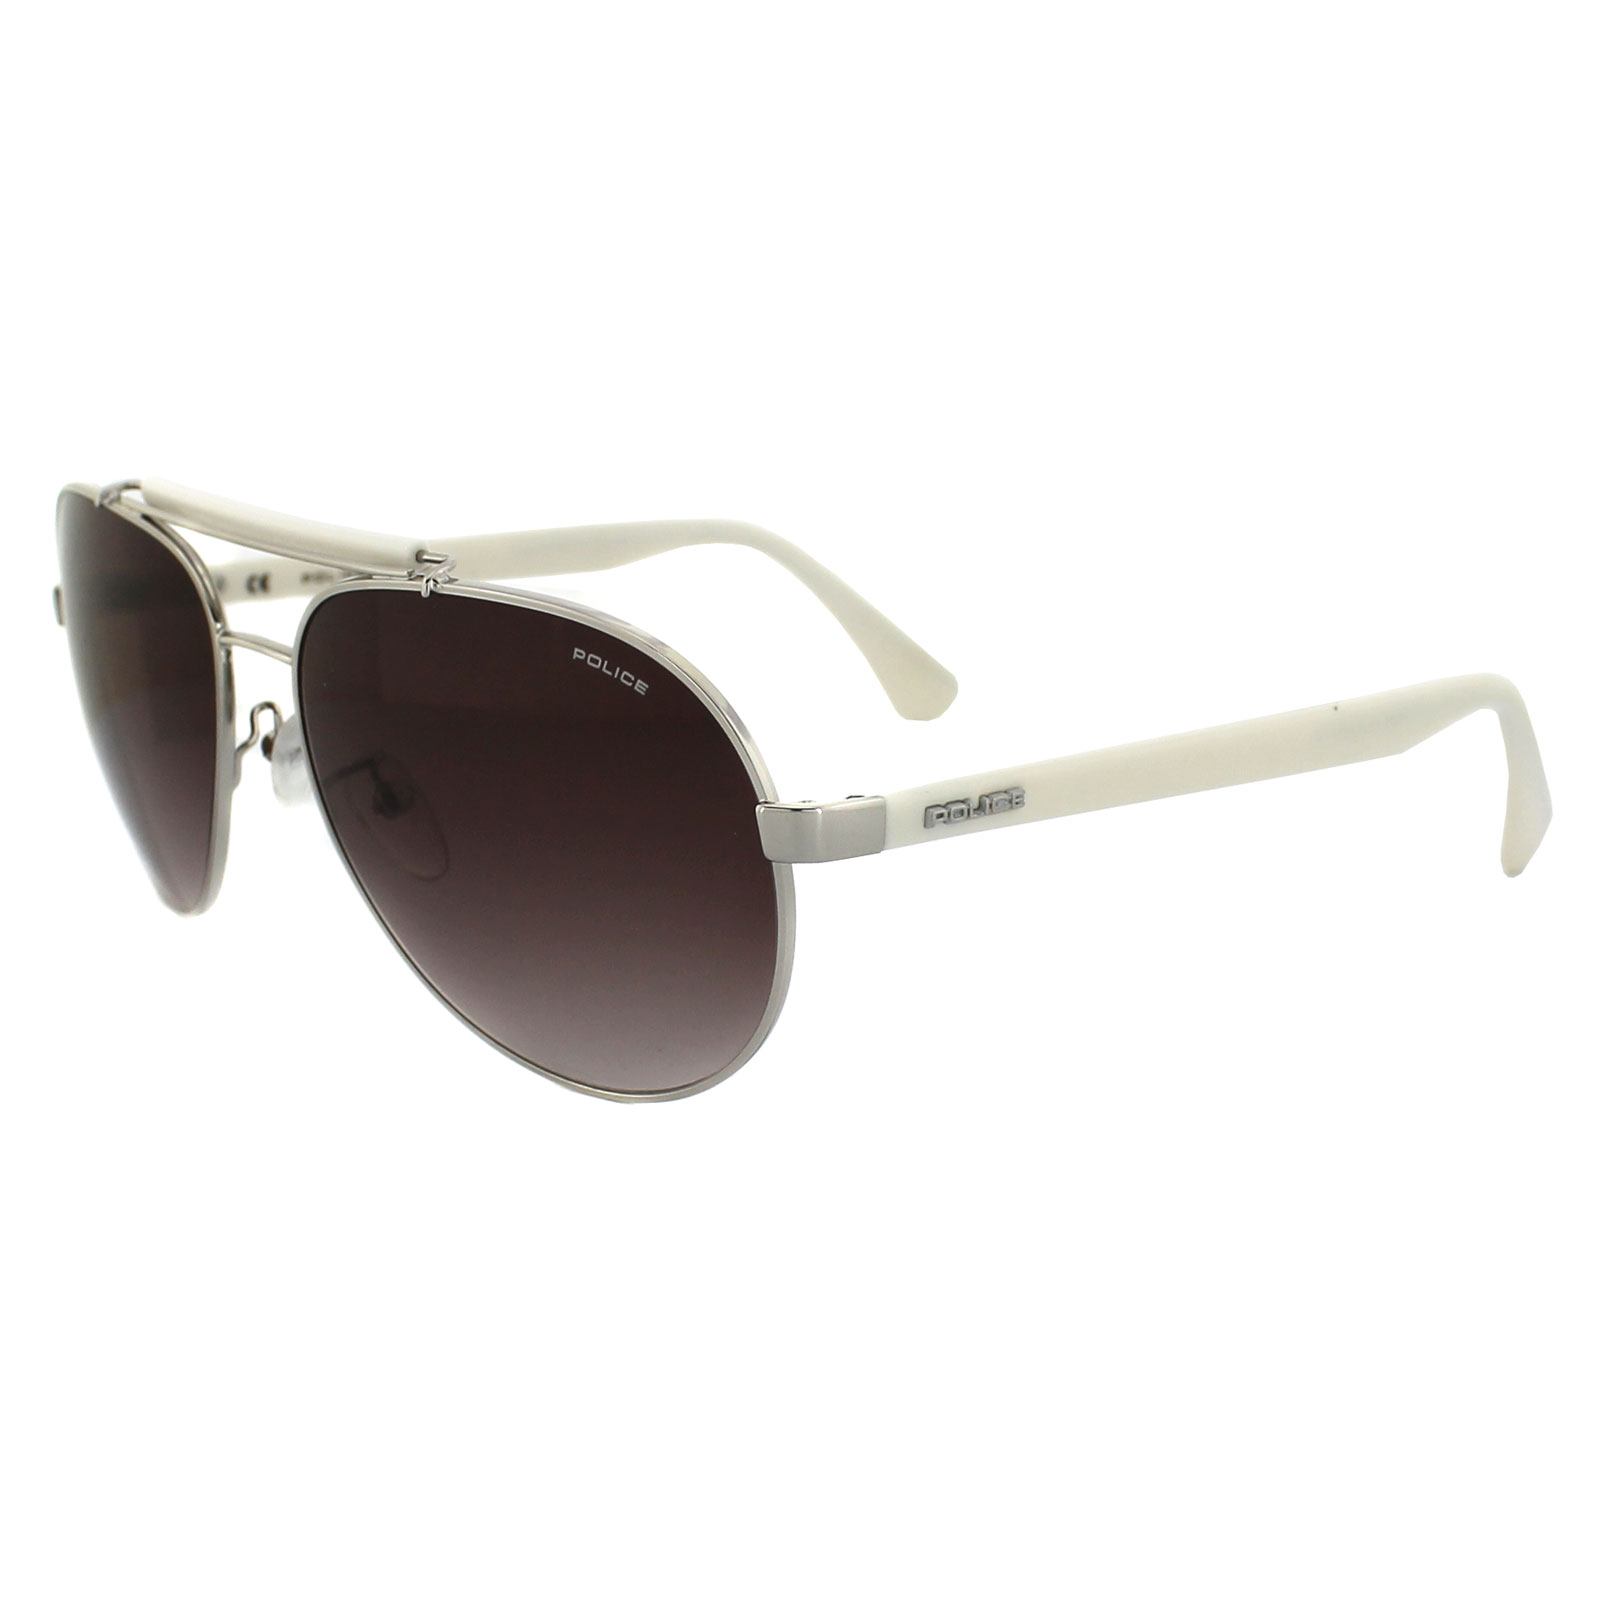 51f5920bfe Police Sunglasses 8644 579 Silver   White Brown Gradient Thumbnail ...